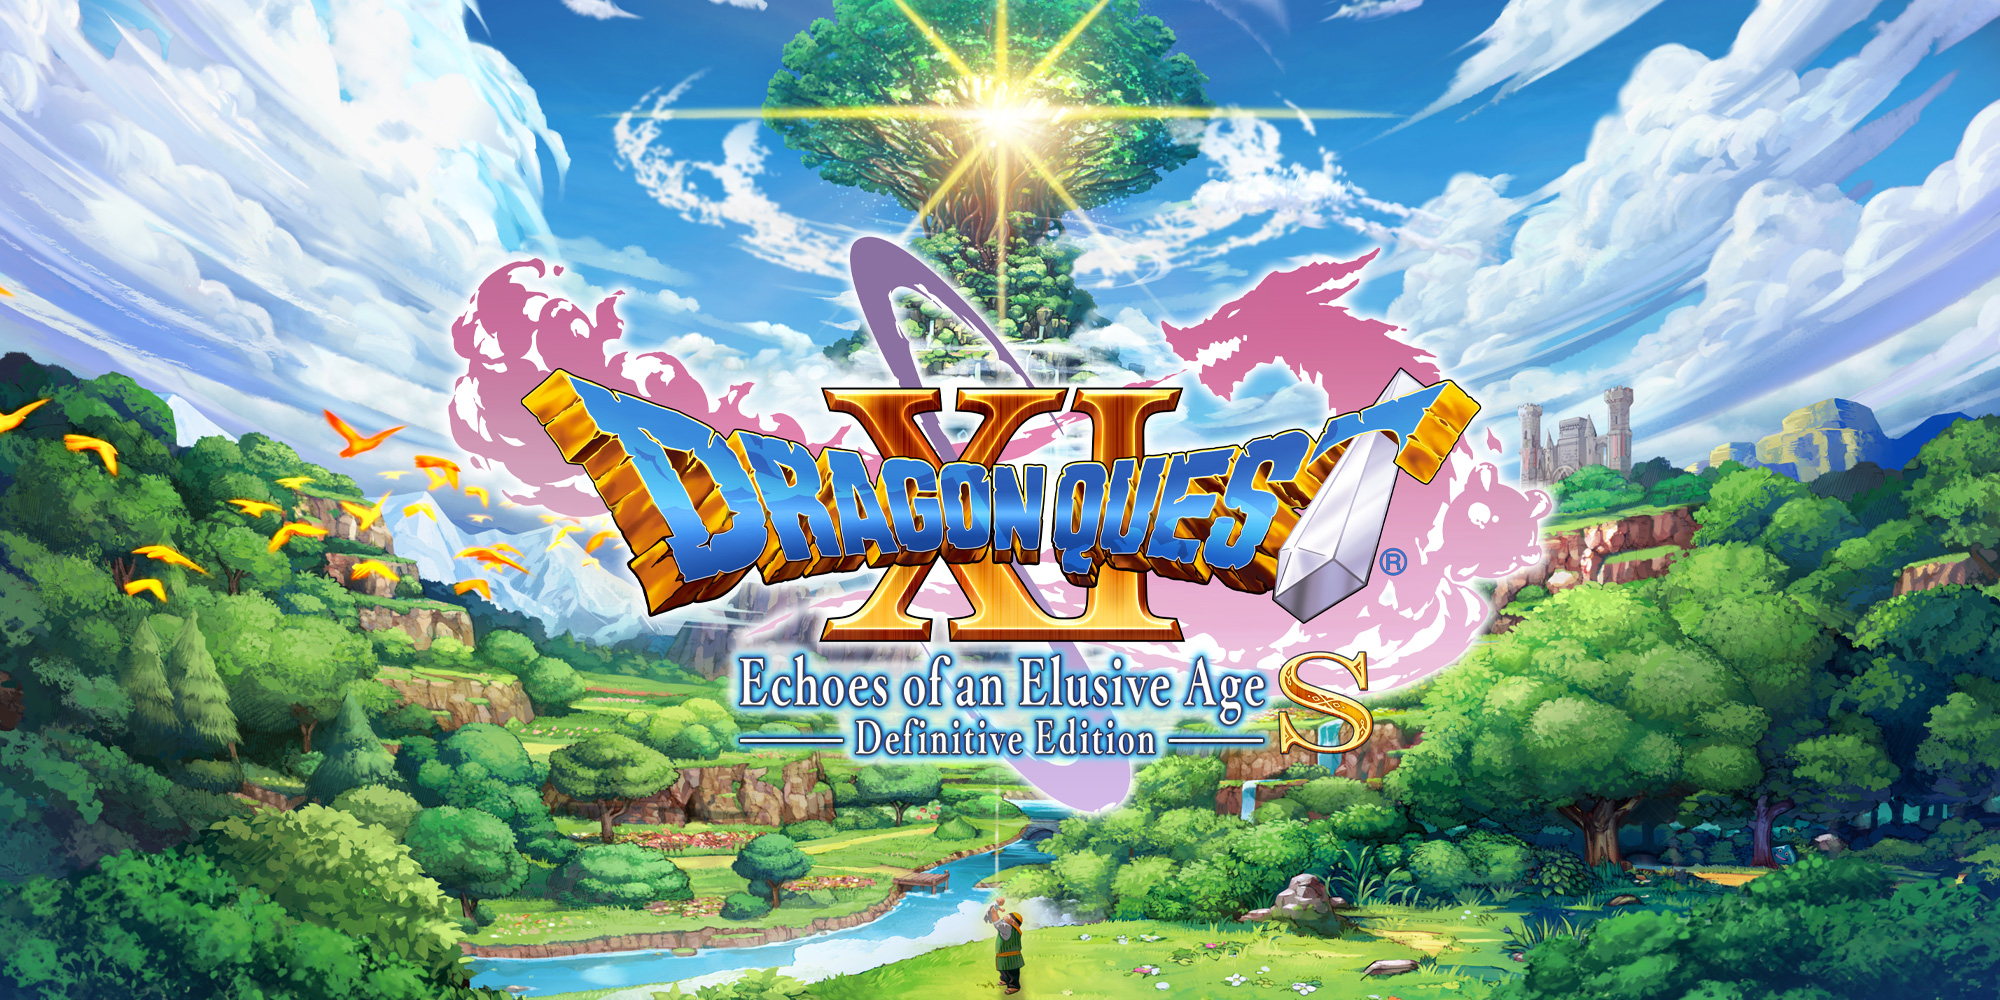 Bekijk de speelsessie van DRAGON QUEST XI S: Echoes of an Elusive Age – Definitive Edition tijdens Nintendo Treehouse: Live